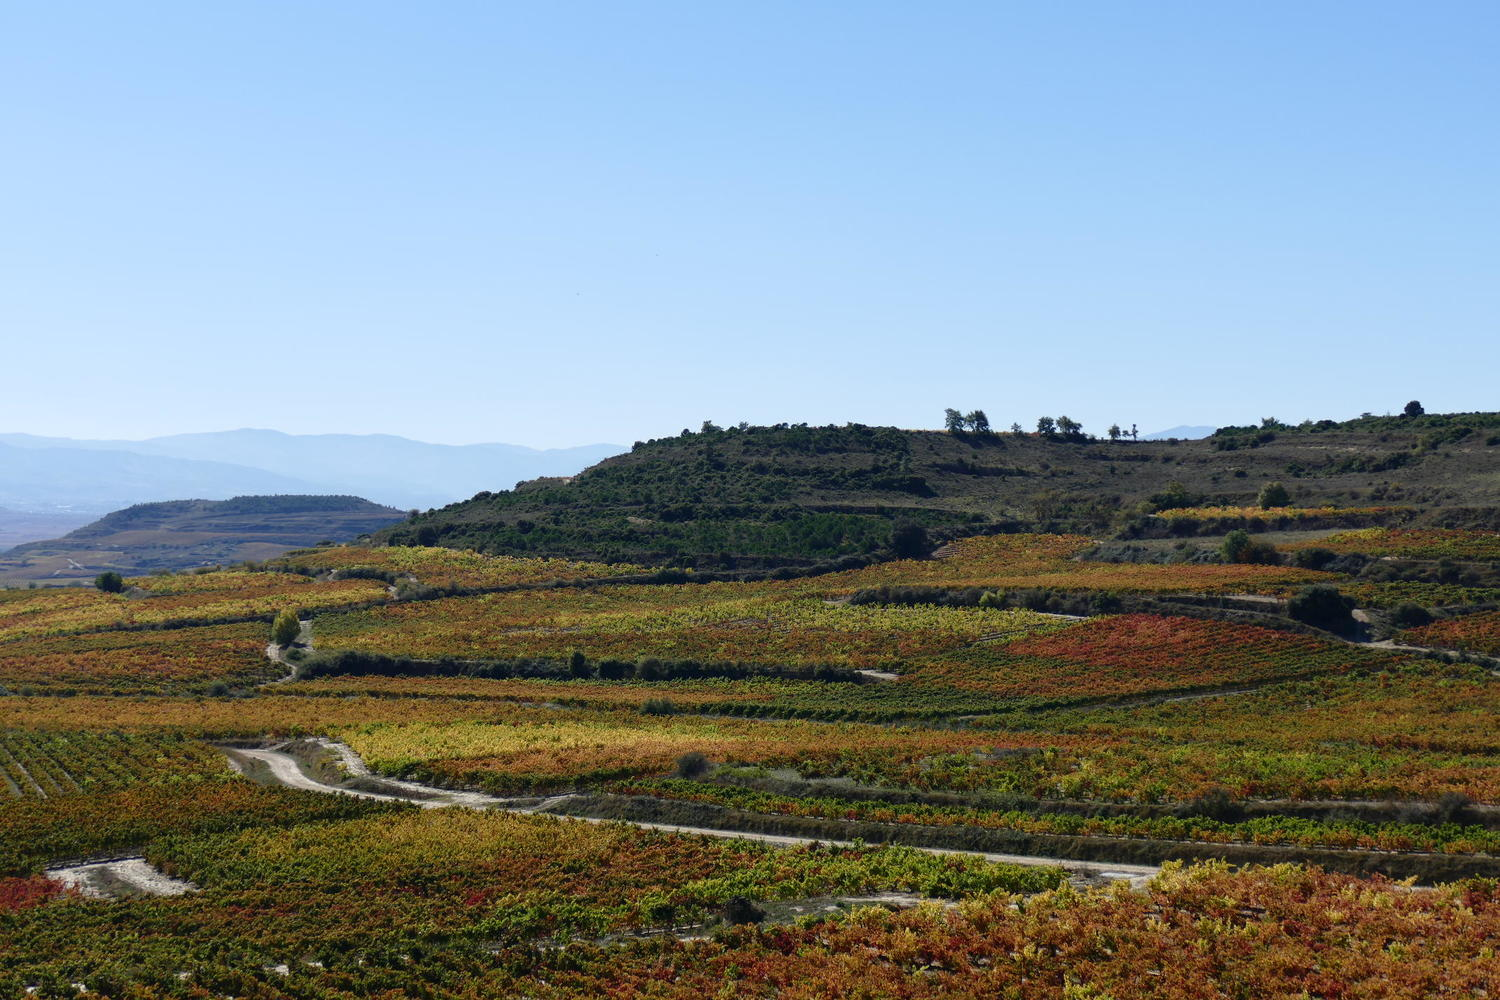 Autumn vines in the hills of Basque Rioja